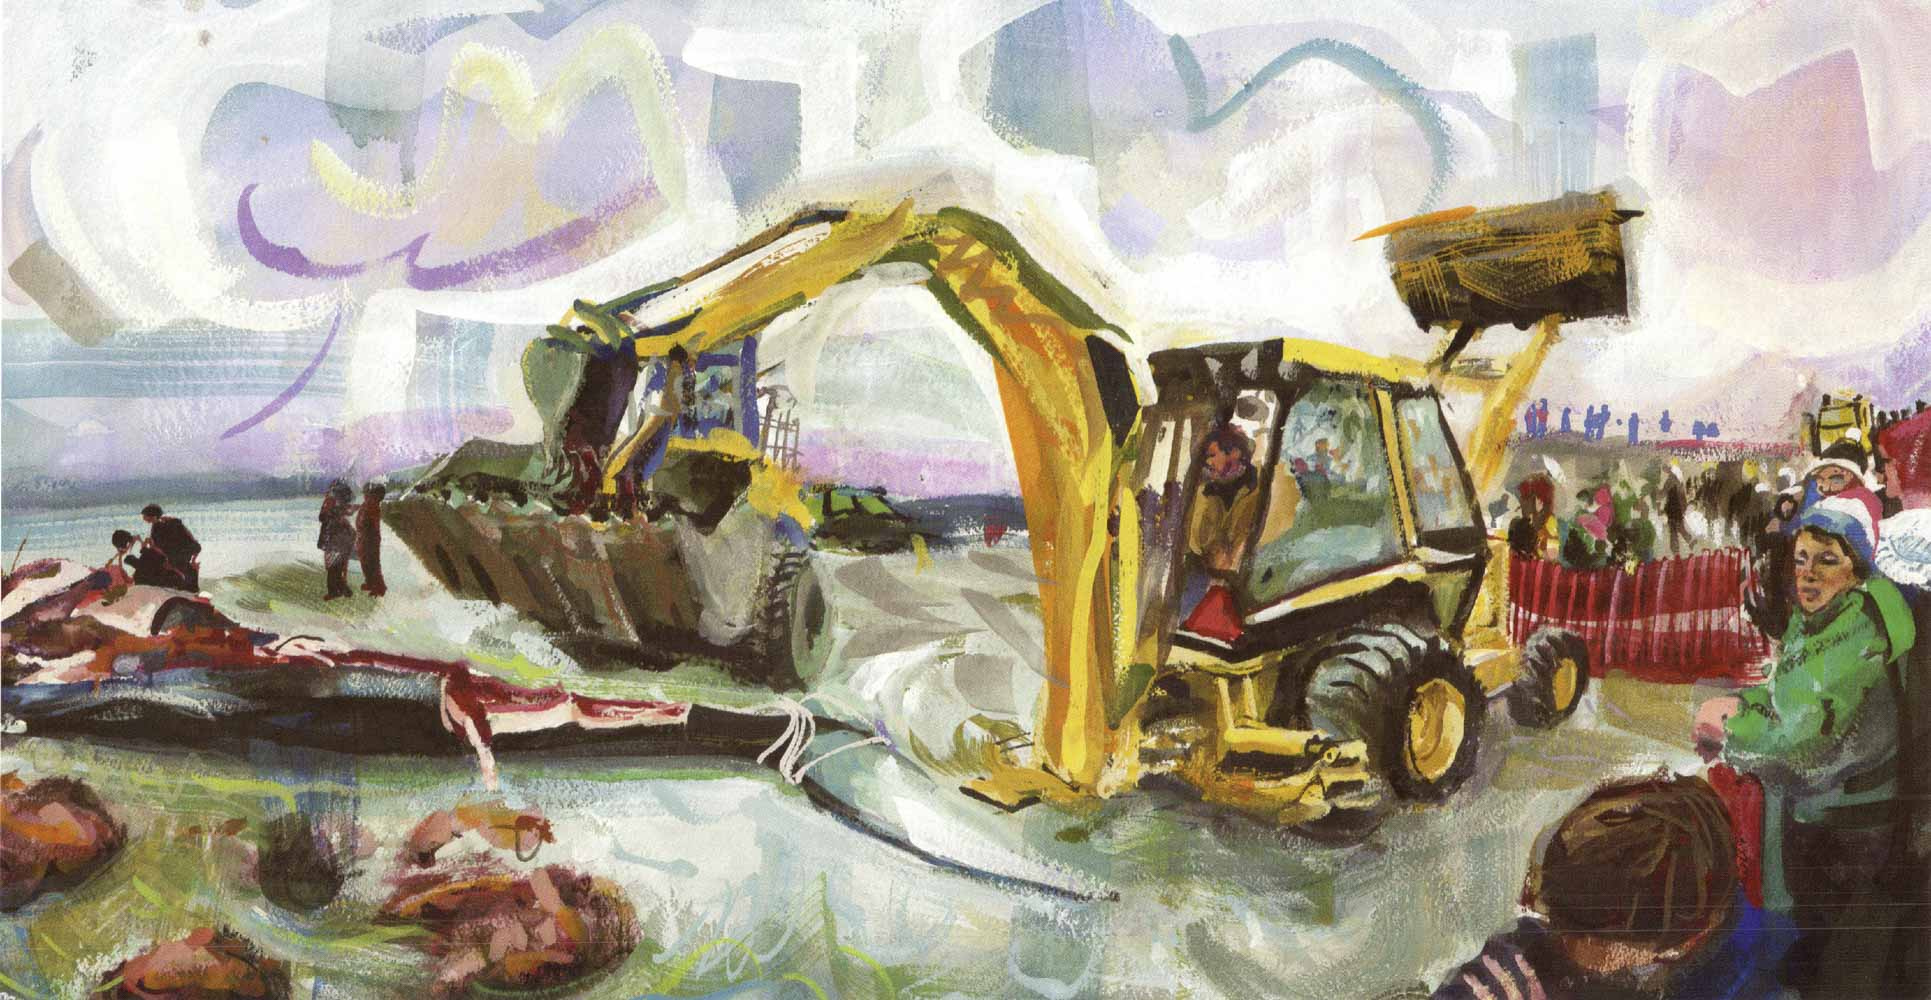 Blue whale on Second Beach, dissection with backhoe, No. 2, Winter 1998